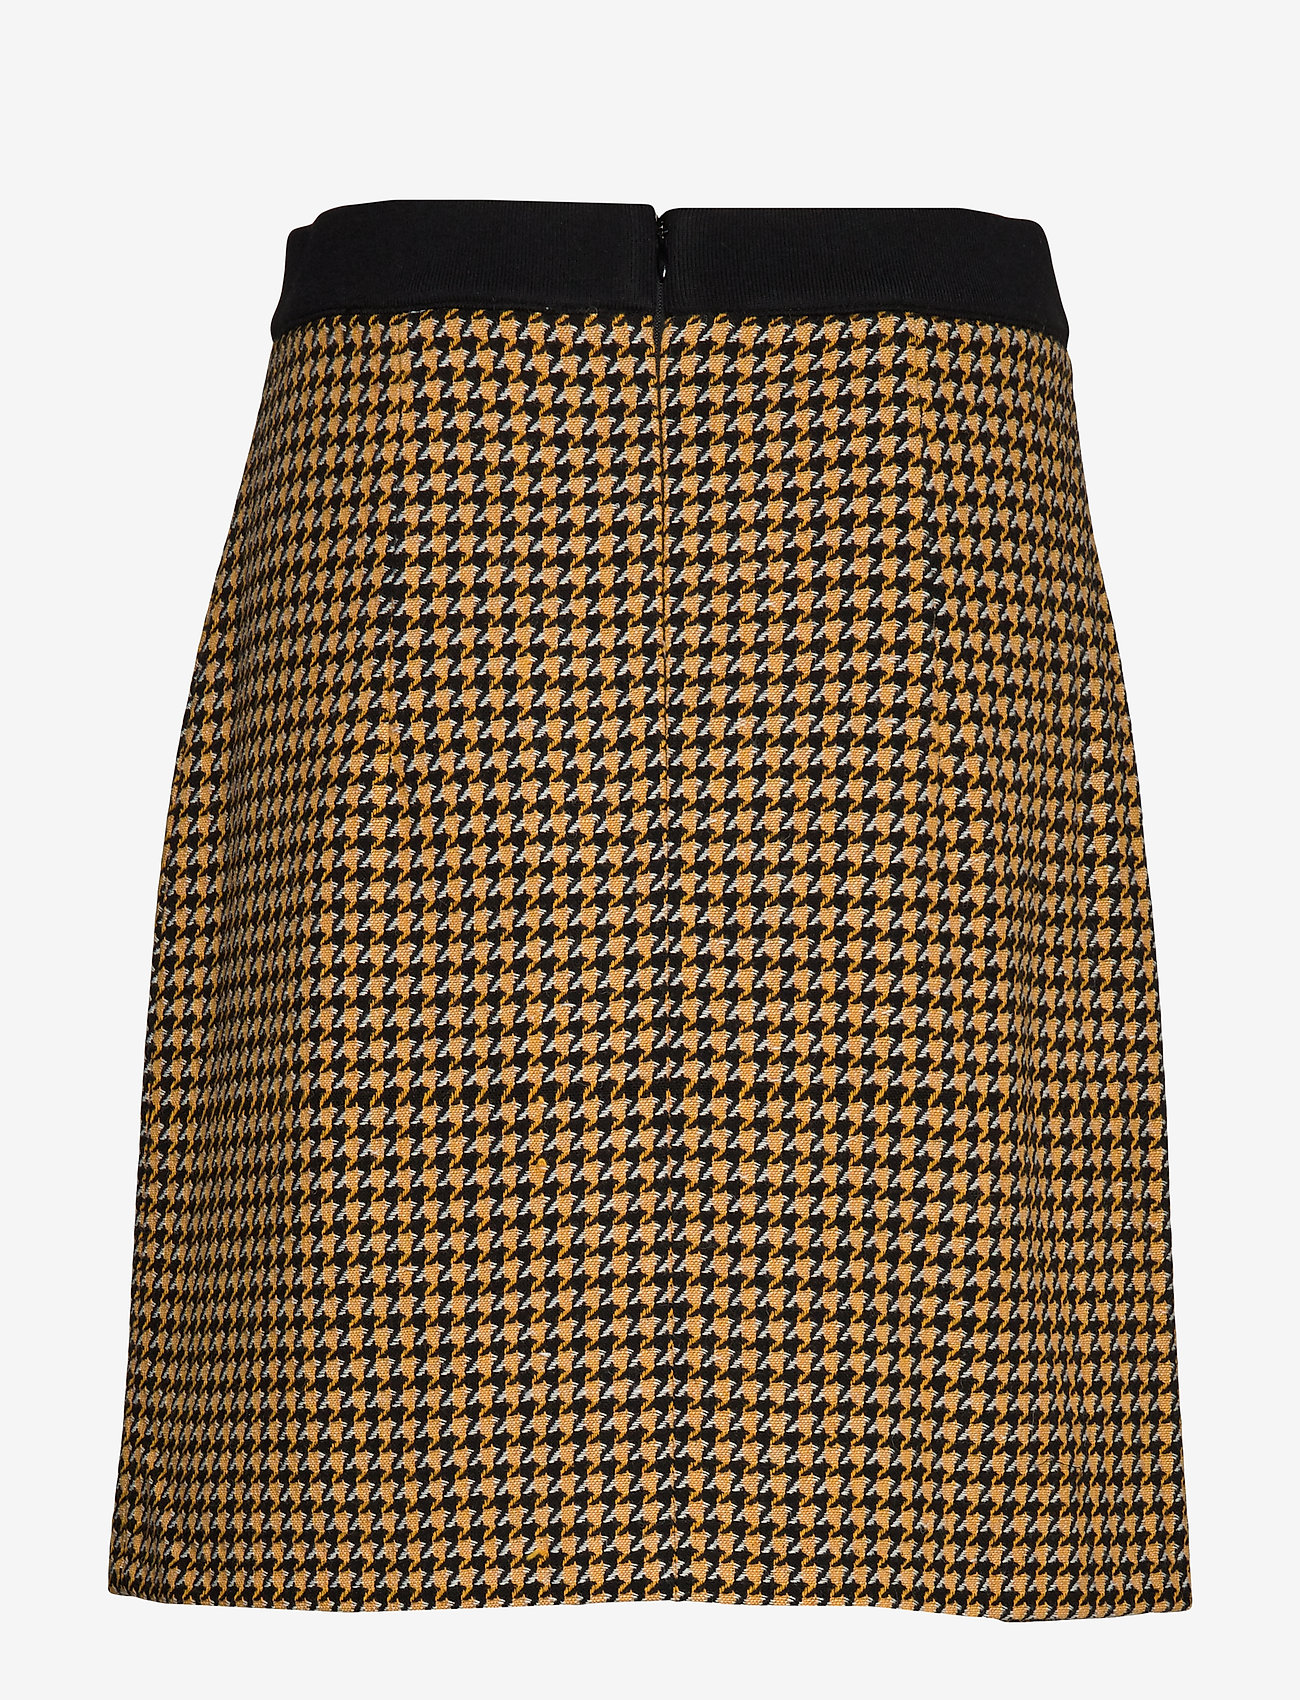 Skirts Woven (Yellow) (359.99 kr) - Esprit Casual